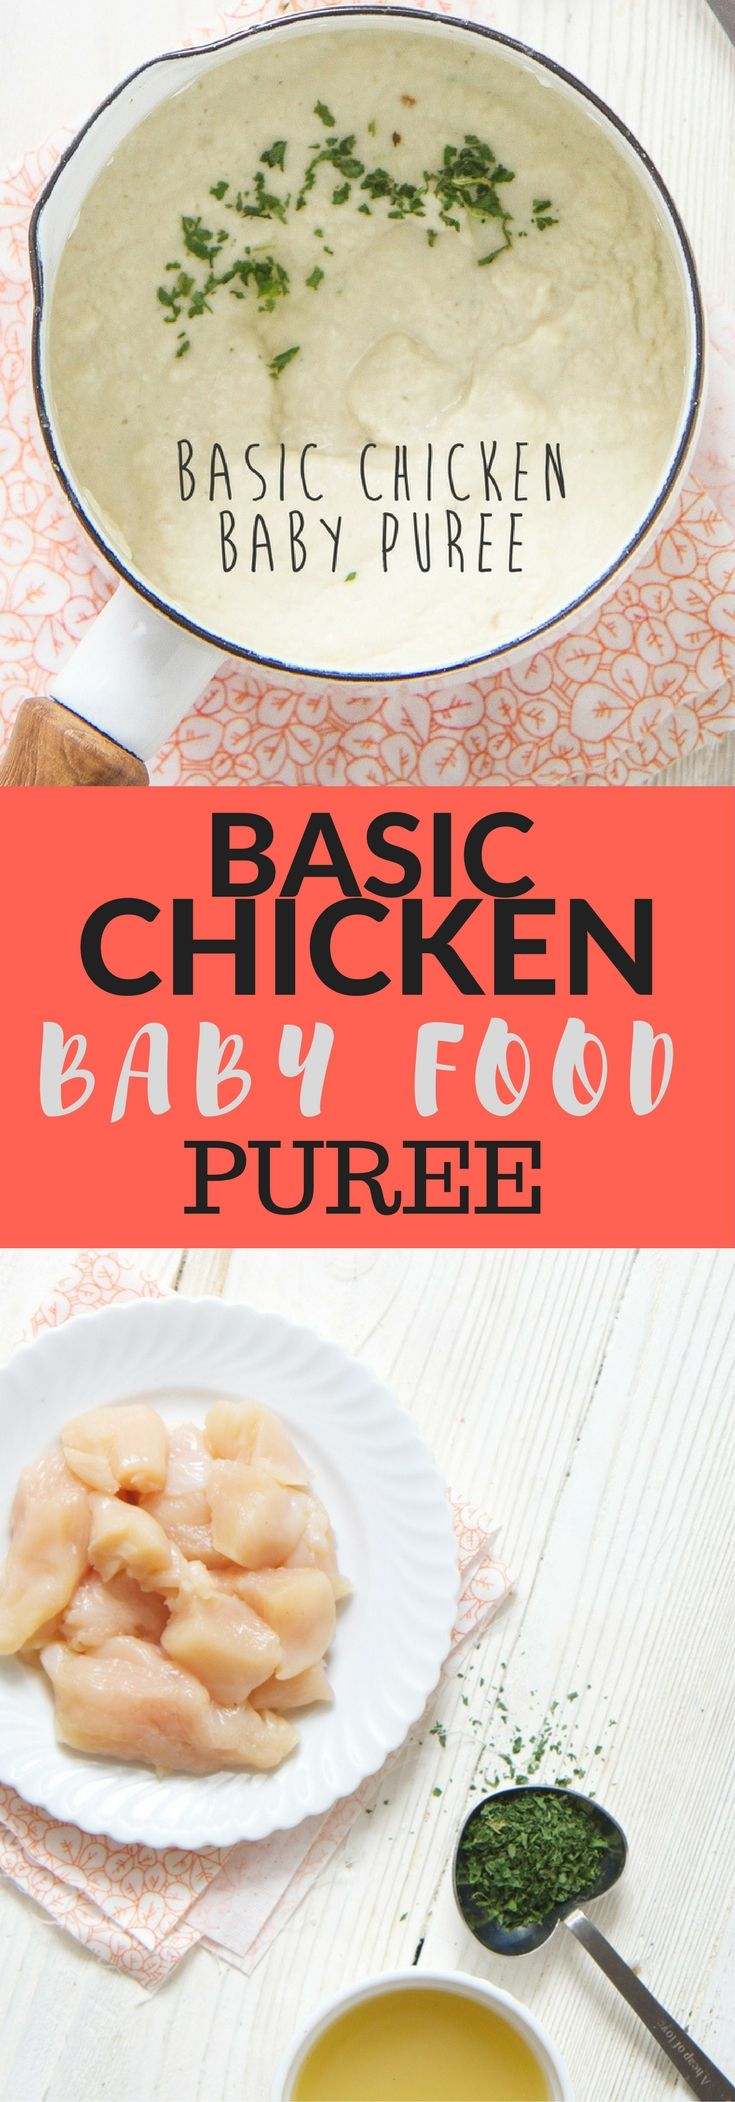 285 Best Baby Food Recipes Images On Pinterest